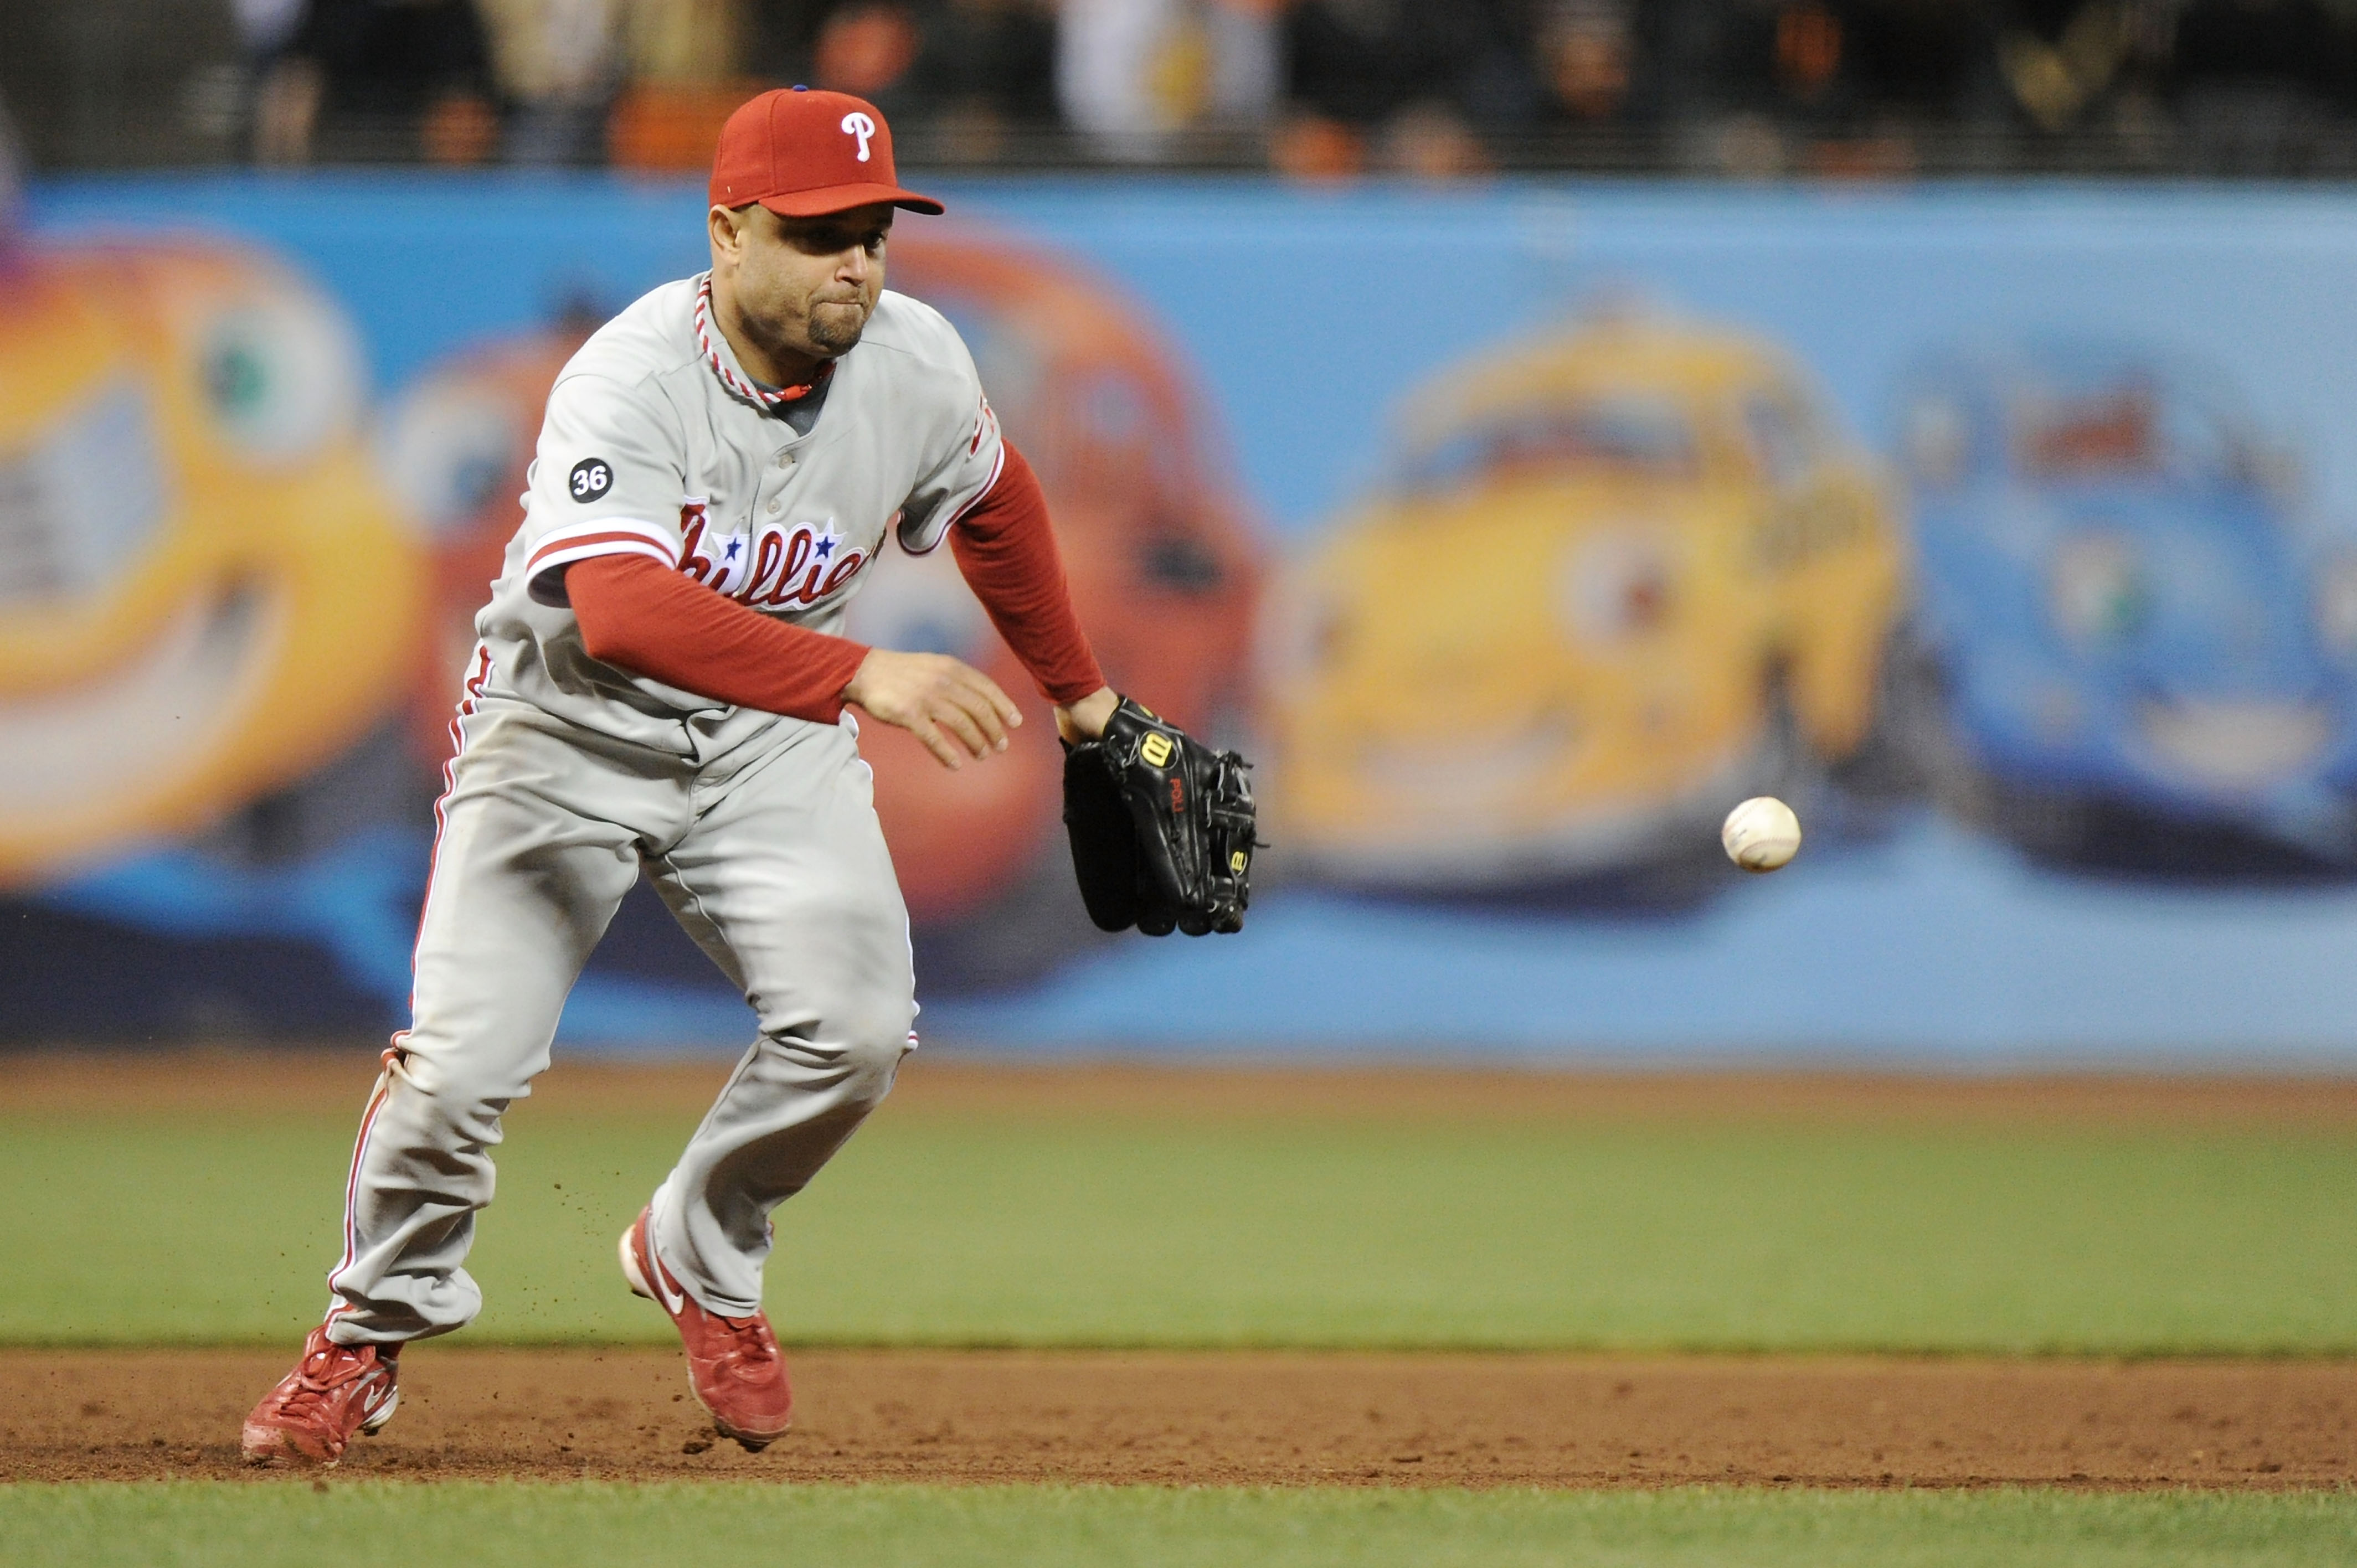 SAN FRANCISCO - OCTOBER 20:  Placido Polanco #27 of the Philadelphia Phillies misplays a ground ball hit by Edgar Renteria #16 of the San Francisco Giants in the fifth inning of Game Four of the NLCS during the 2010 MLB Playoffs at AT&T Park on October 20